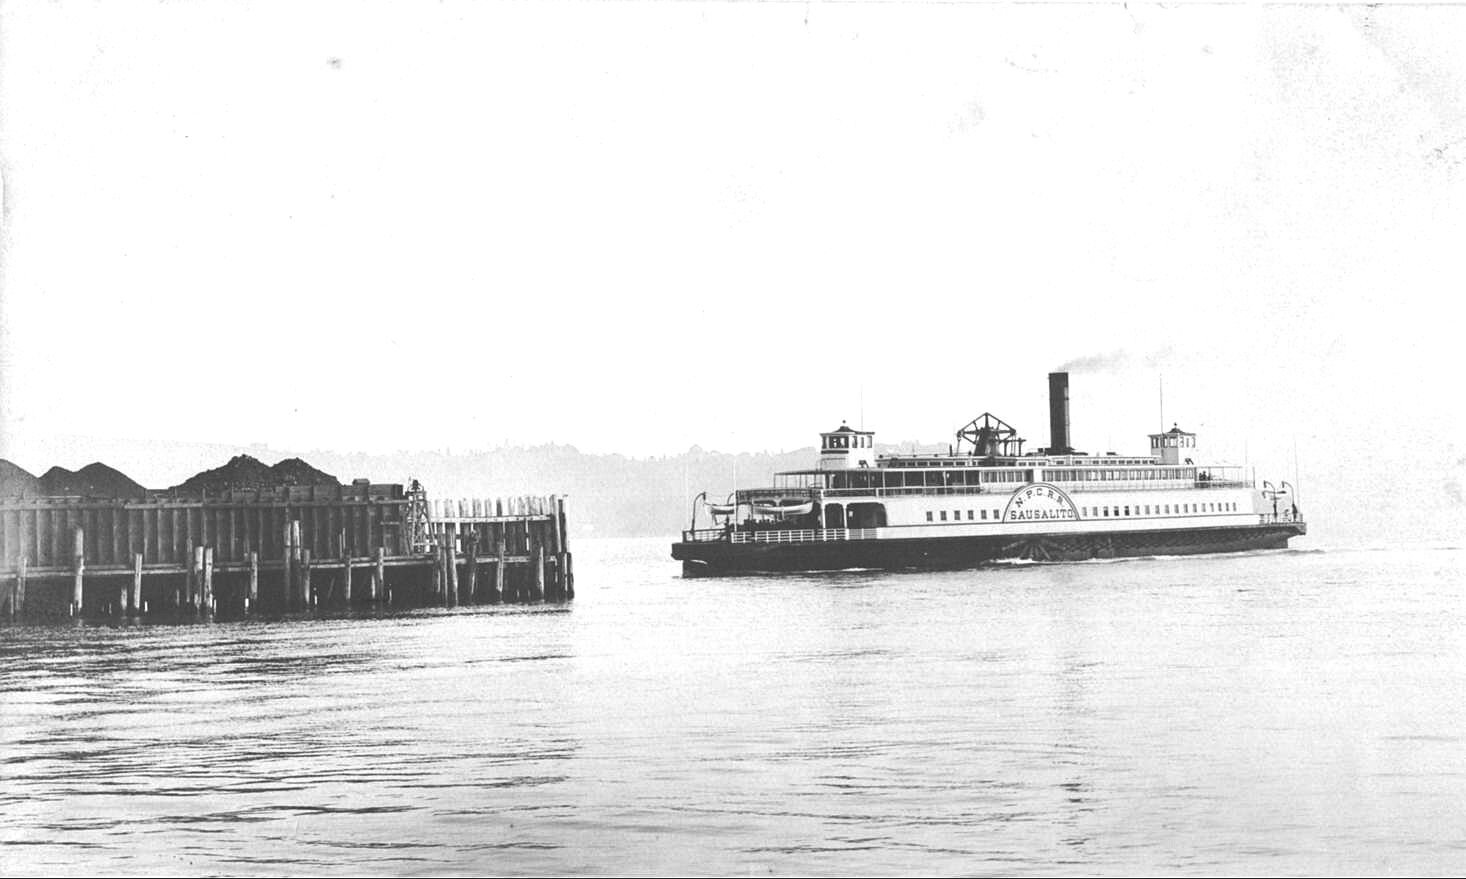 PHOTO COURTESY OF SAUSALITO HISTORICAL SOCIETY  The ferry Sausalito approaches its home port